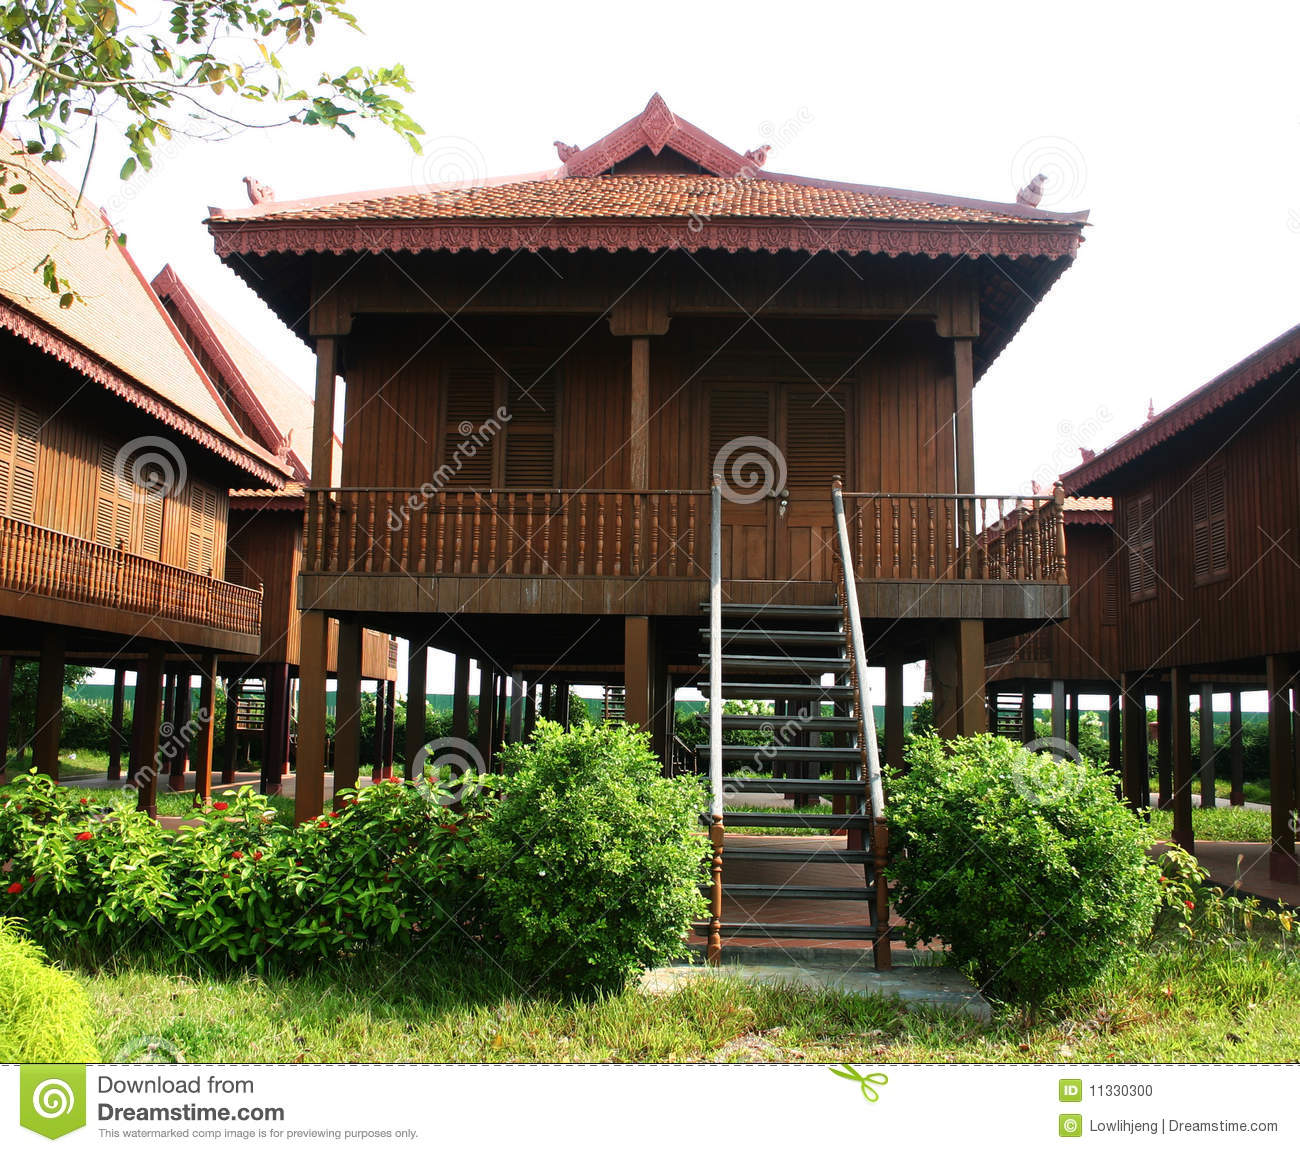 Maison en bois cambodgienne traditionnelle photo stock for Acheter maison cambodge